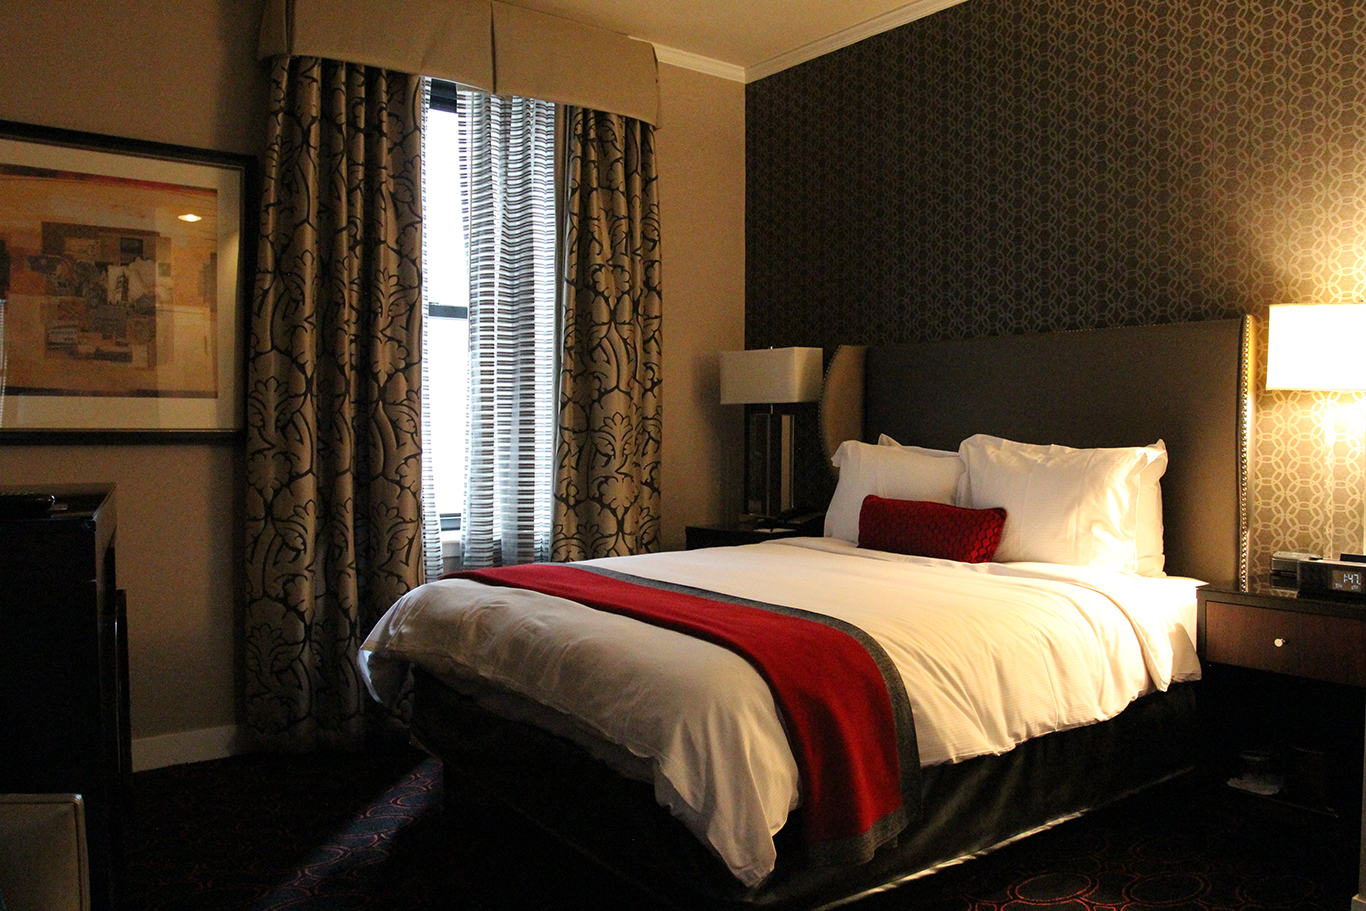 King Bedroom at Copley Square Hotel in Boston